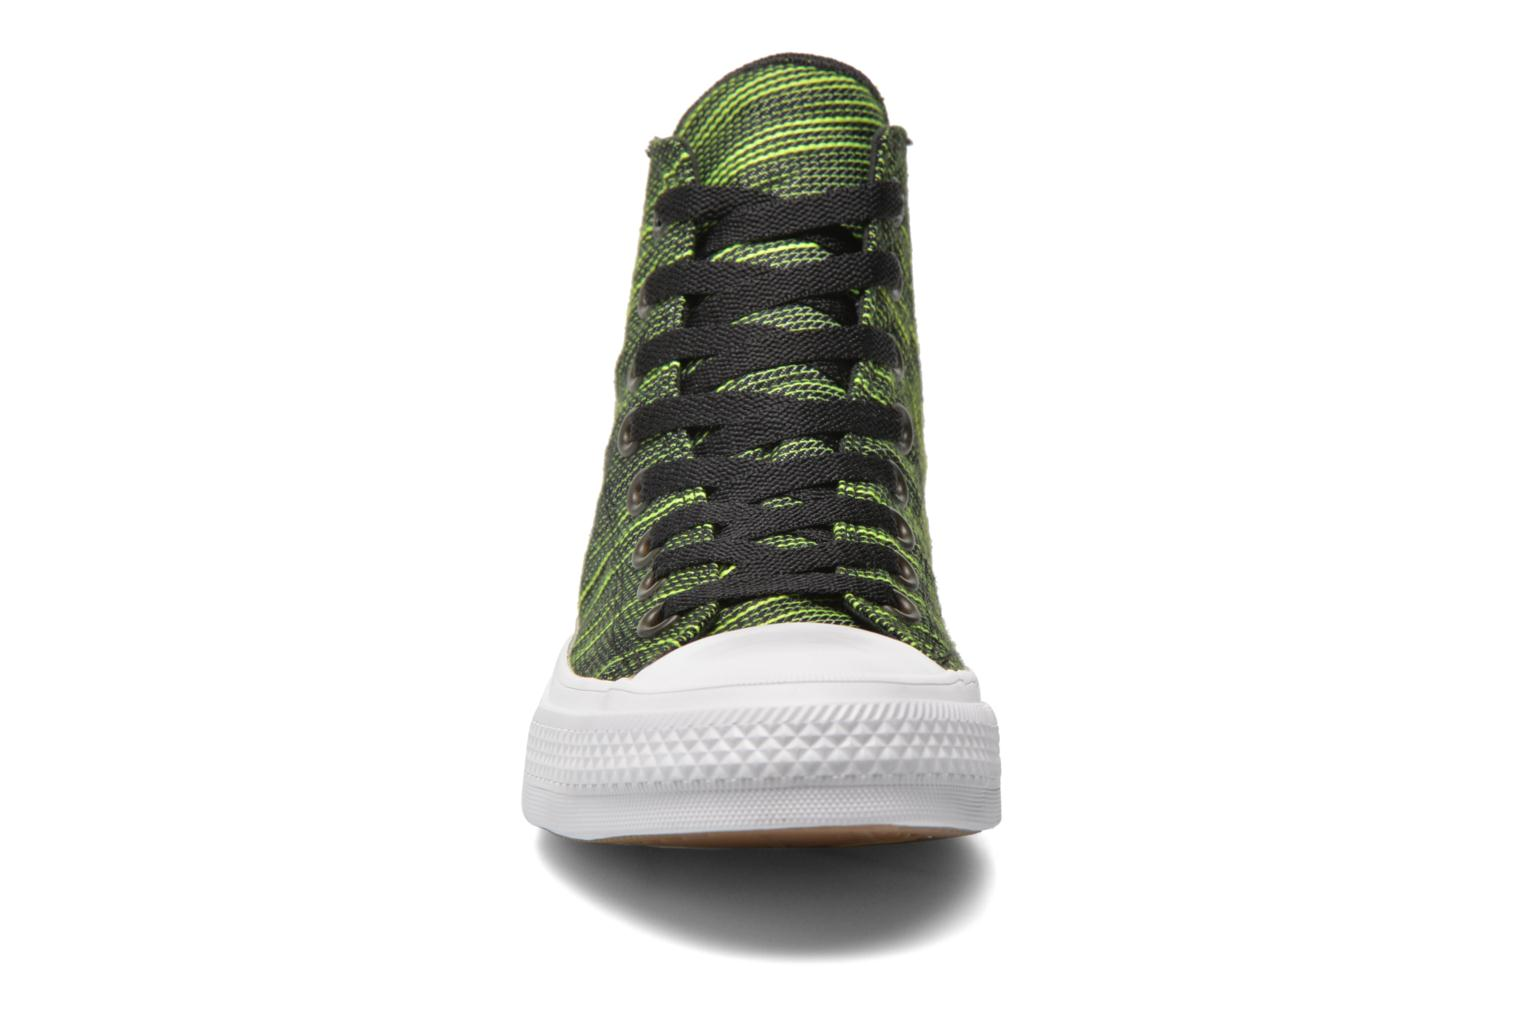 Chuck Taylor All Star II Hi M Black-Volt Green-White